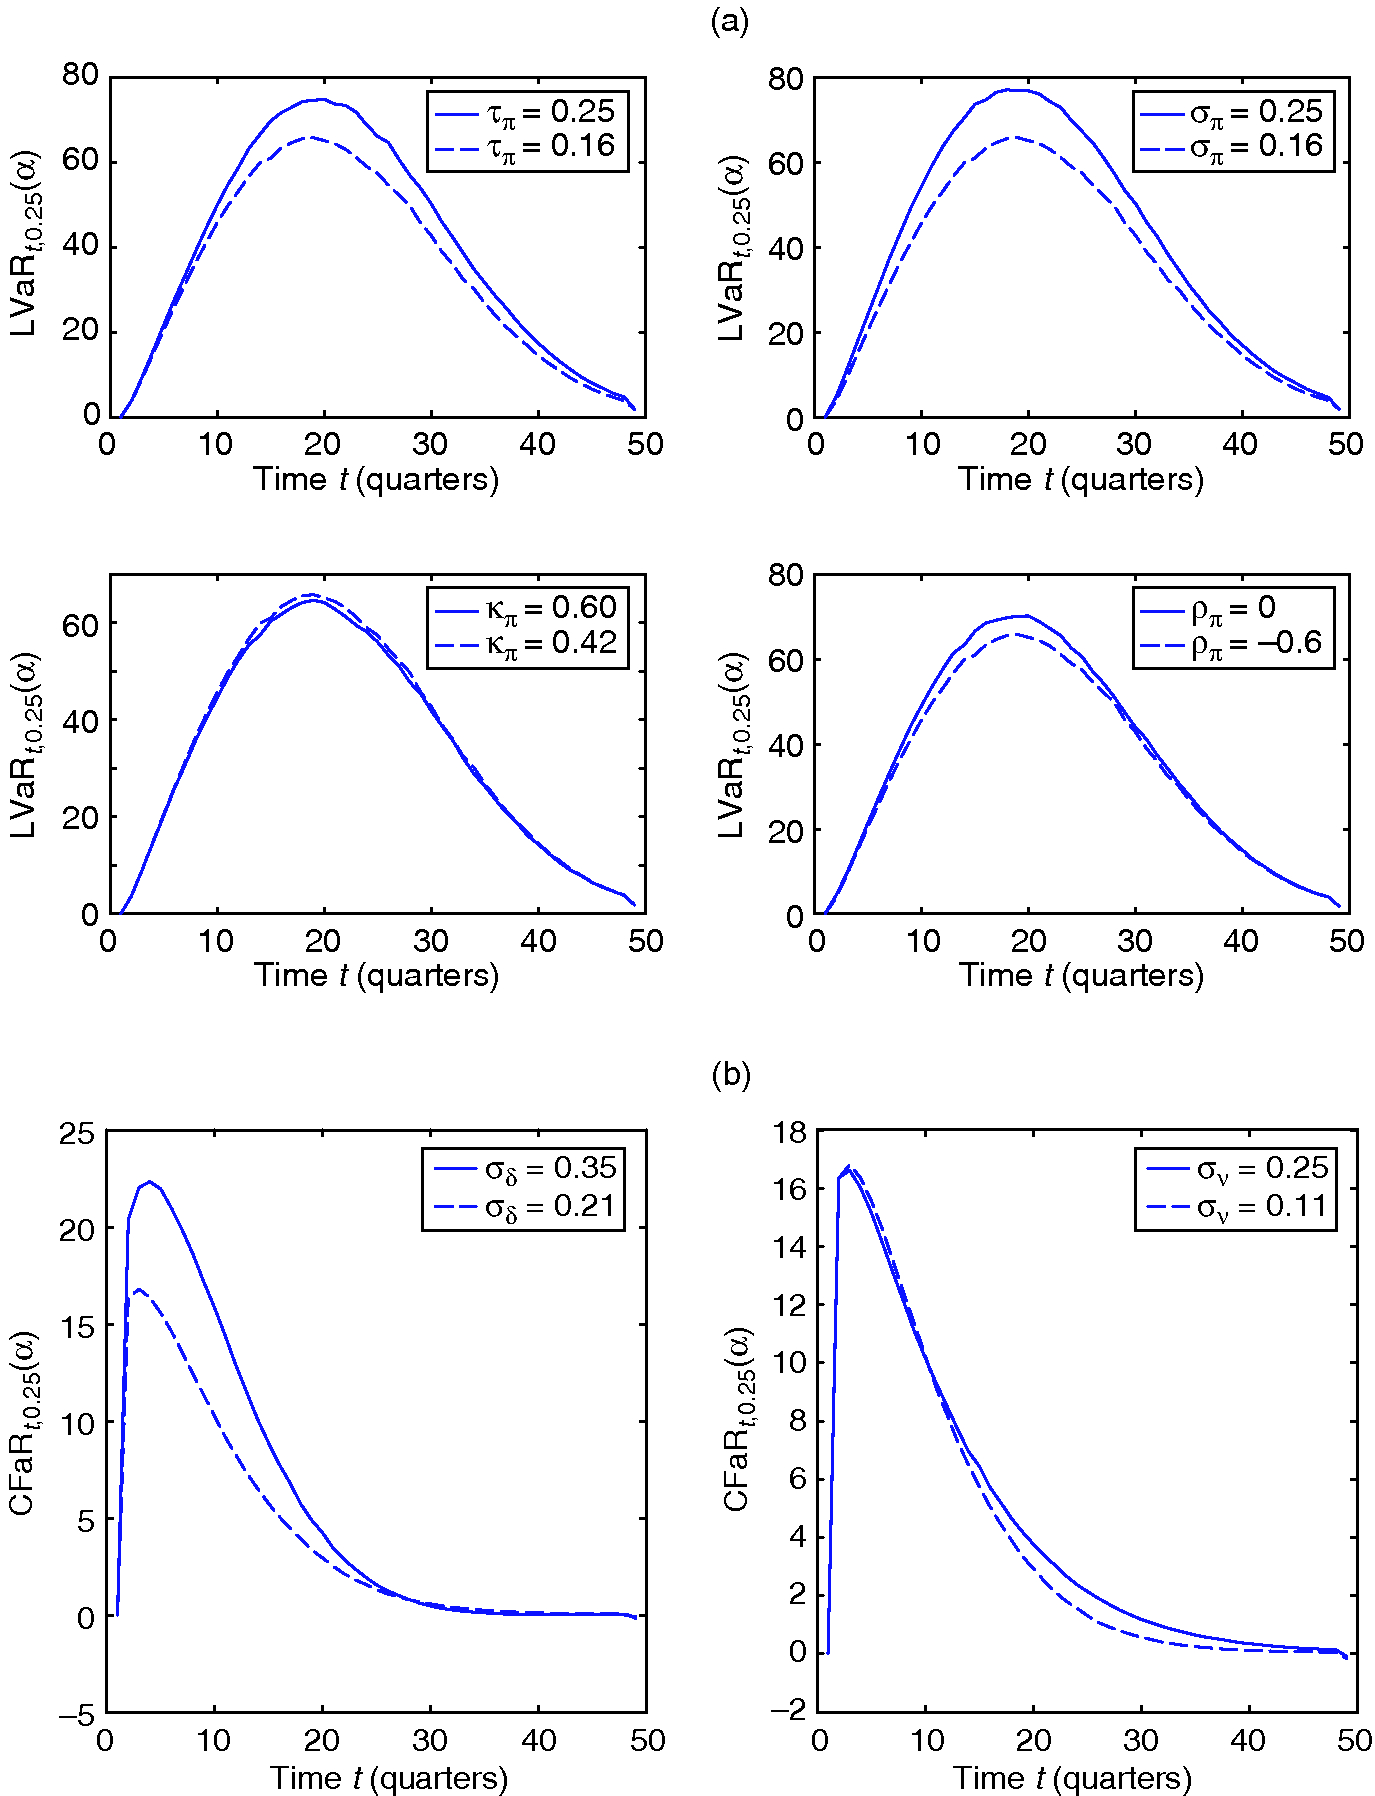 Figure 4: Sensitivity analysis for (a) LVaR and (b) CFaR